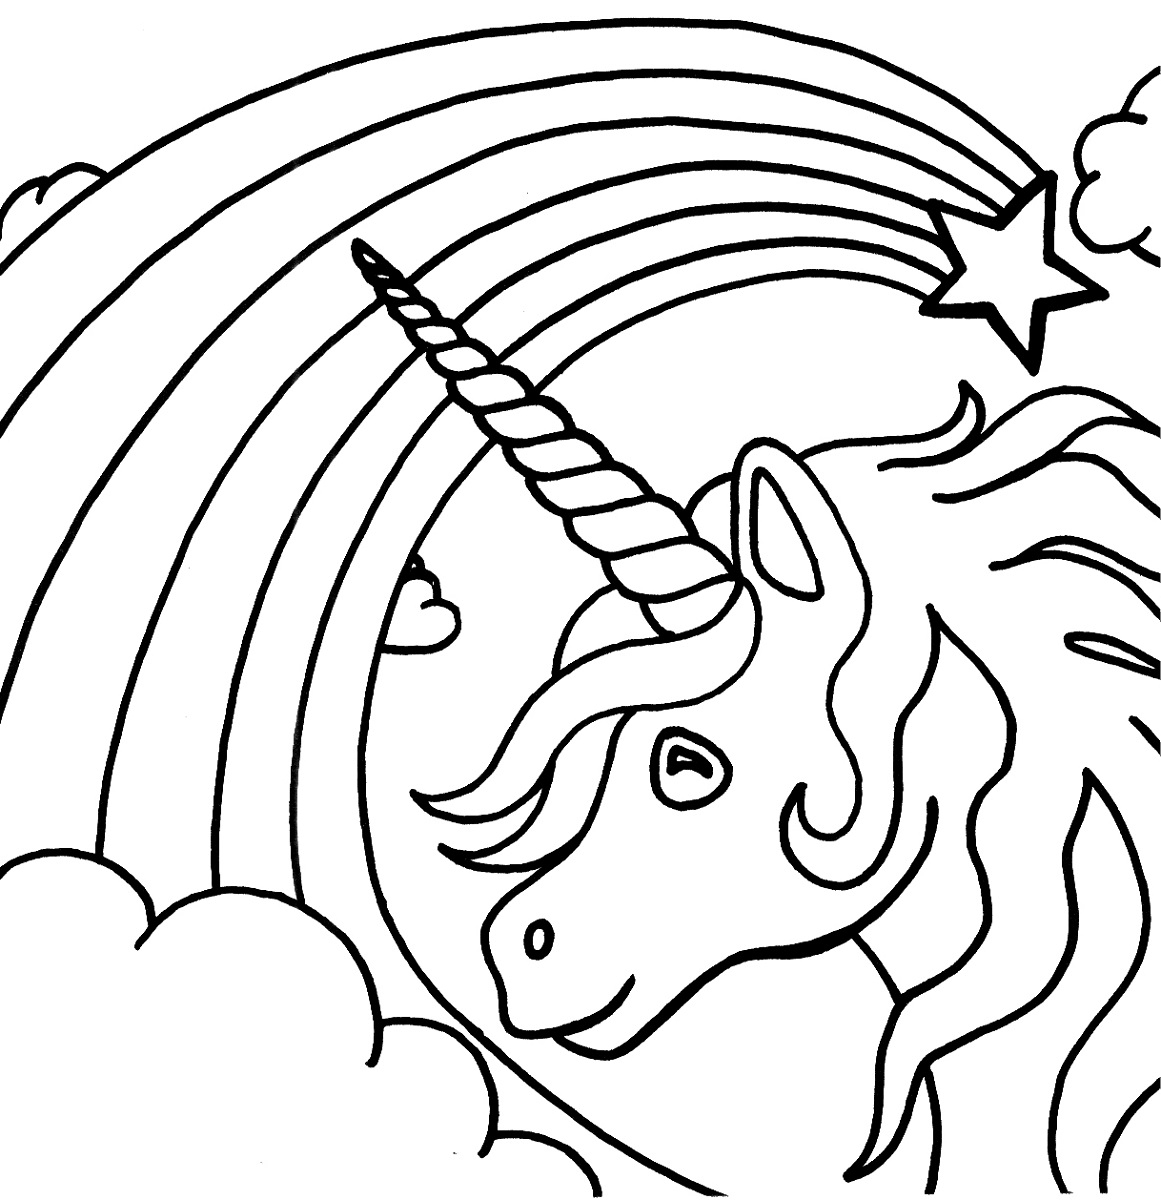 Free Printable Coloring Pages For Kids Free Coloring Pages With Printable Sheets For Kids Also Childrens